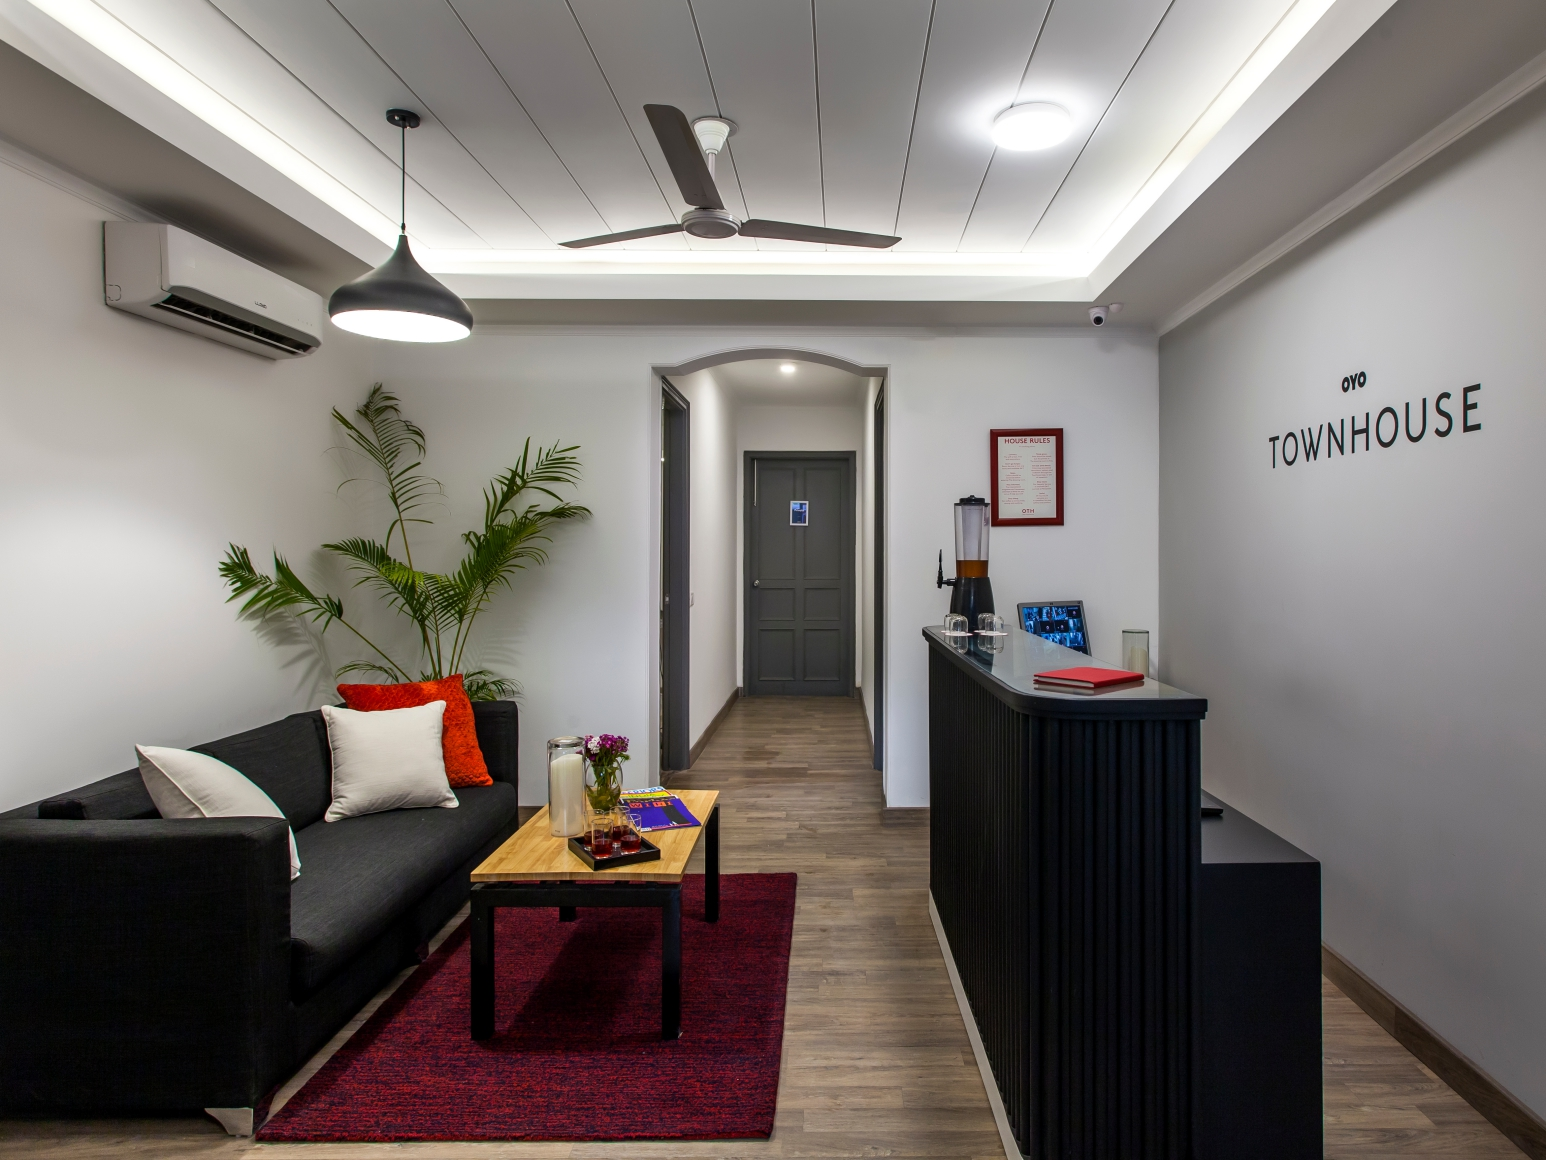 India's OYO snags $10M strategic investment from hotel giant China Lodging